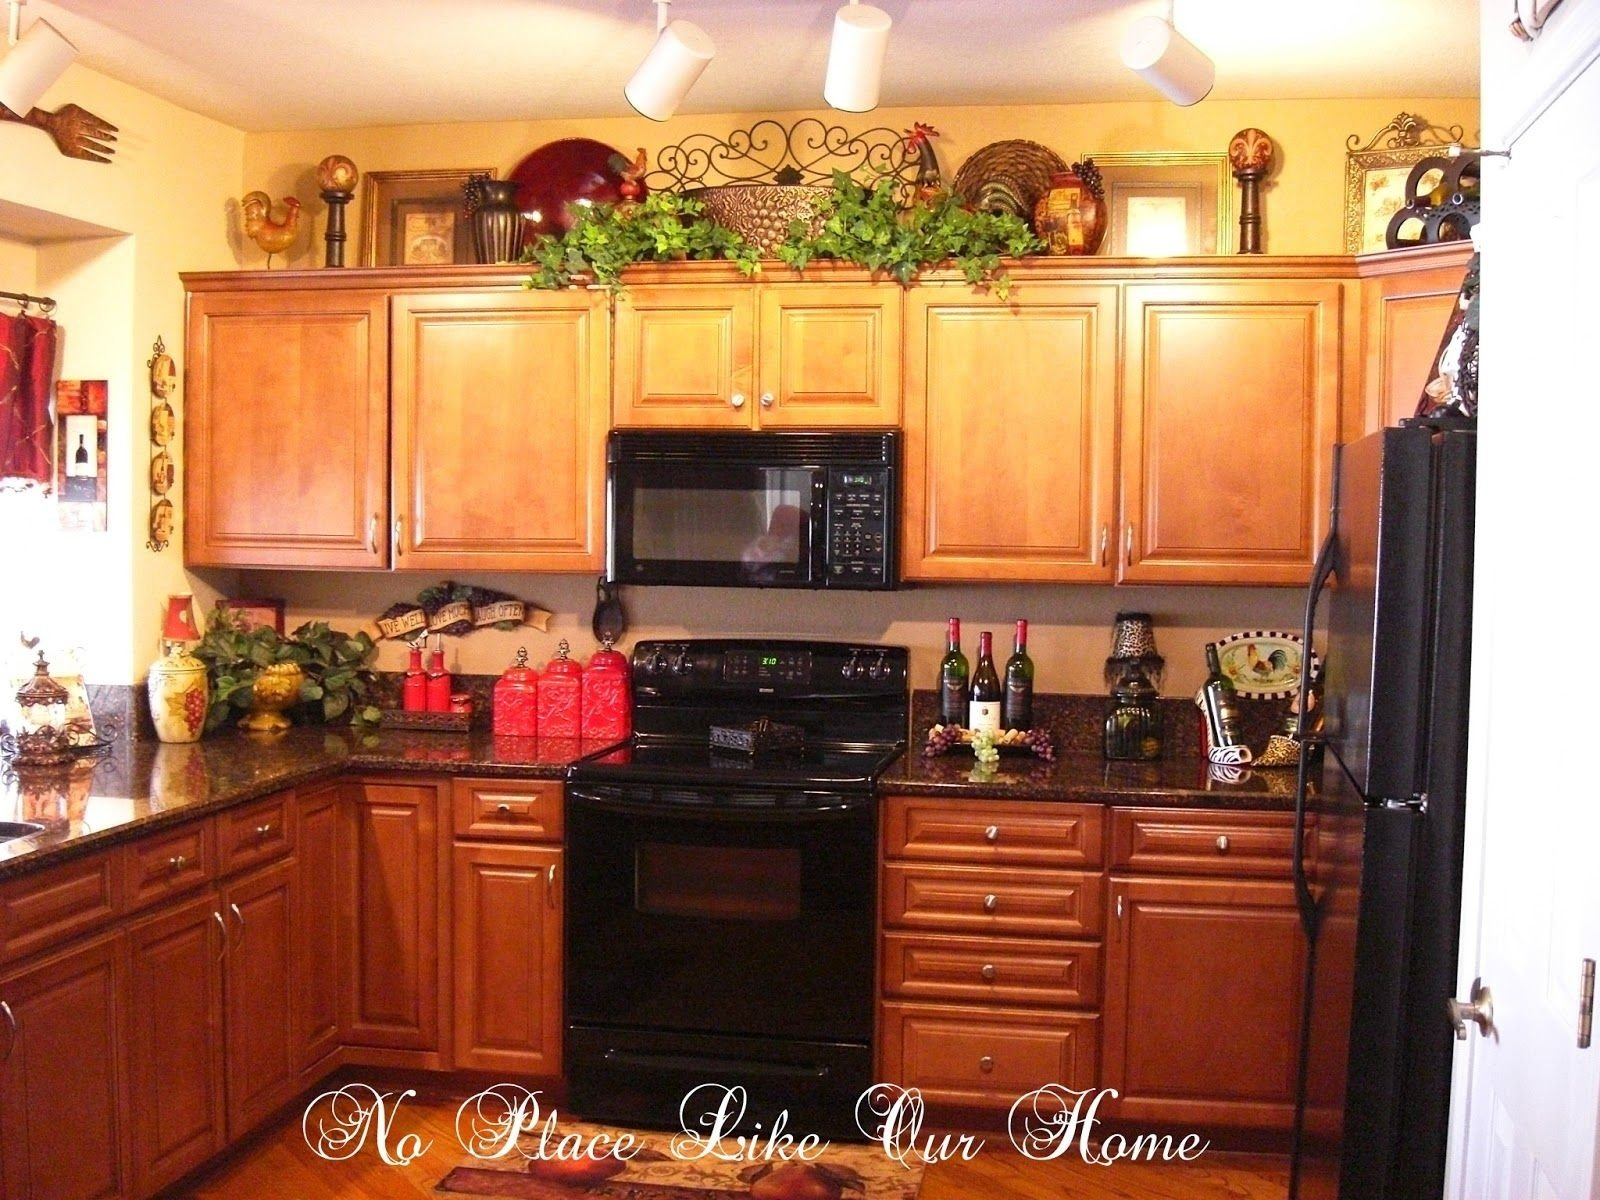 10 Cute Decorating Ideas Above Kitchen Cabinets decorating above kitchen cabinets tuscany heres a closer look at 4